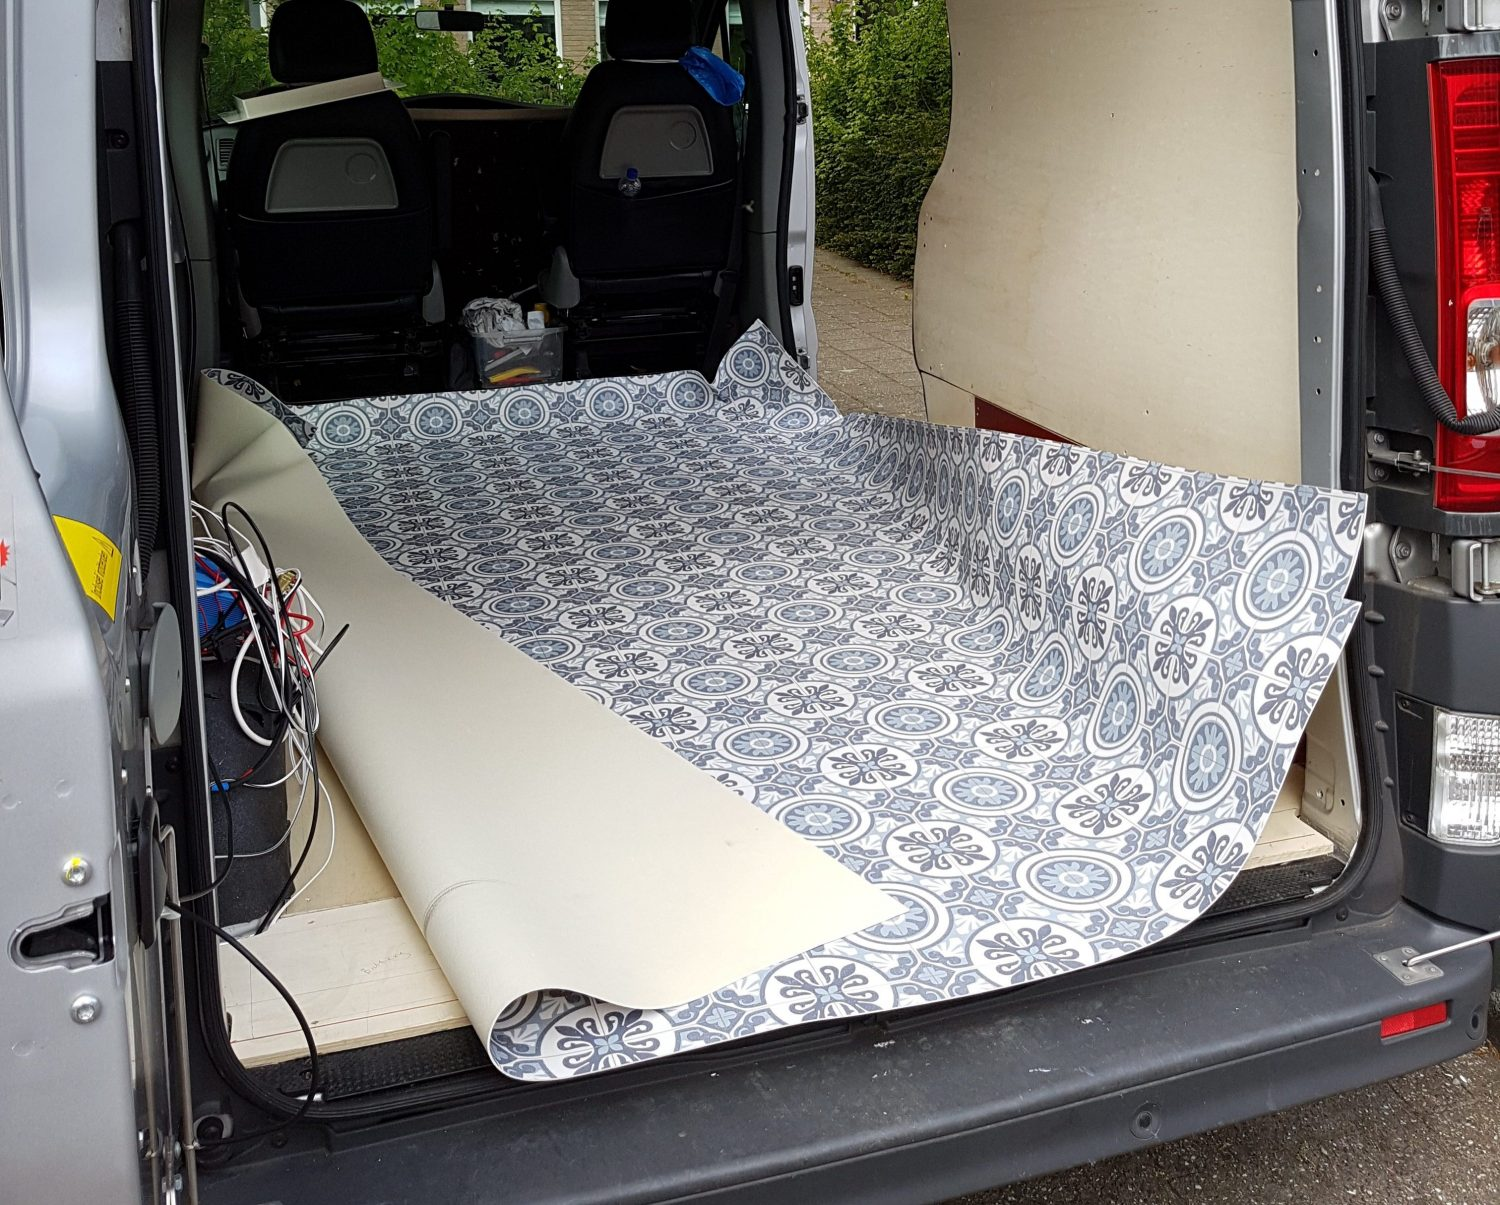 The Floor, Ceiling and Walls - DIY Renault Trafic Campervan Conversion Part 3